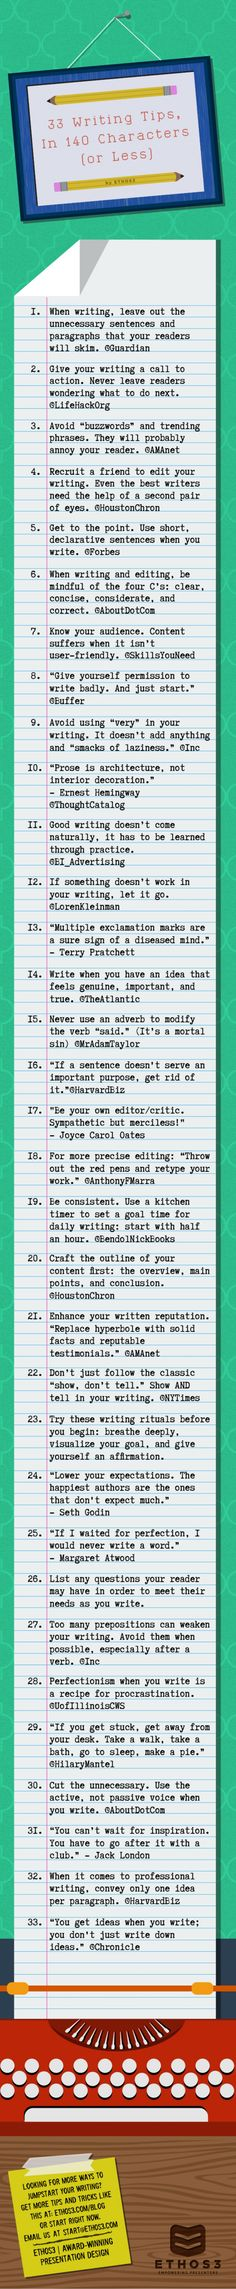 33 Writing Tips, in 140 characters or less (By Ethos3) by Ethos3 | Presentation Design and Training via slideshare